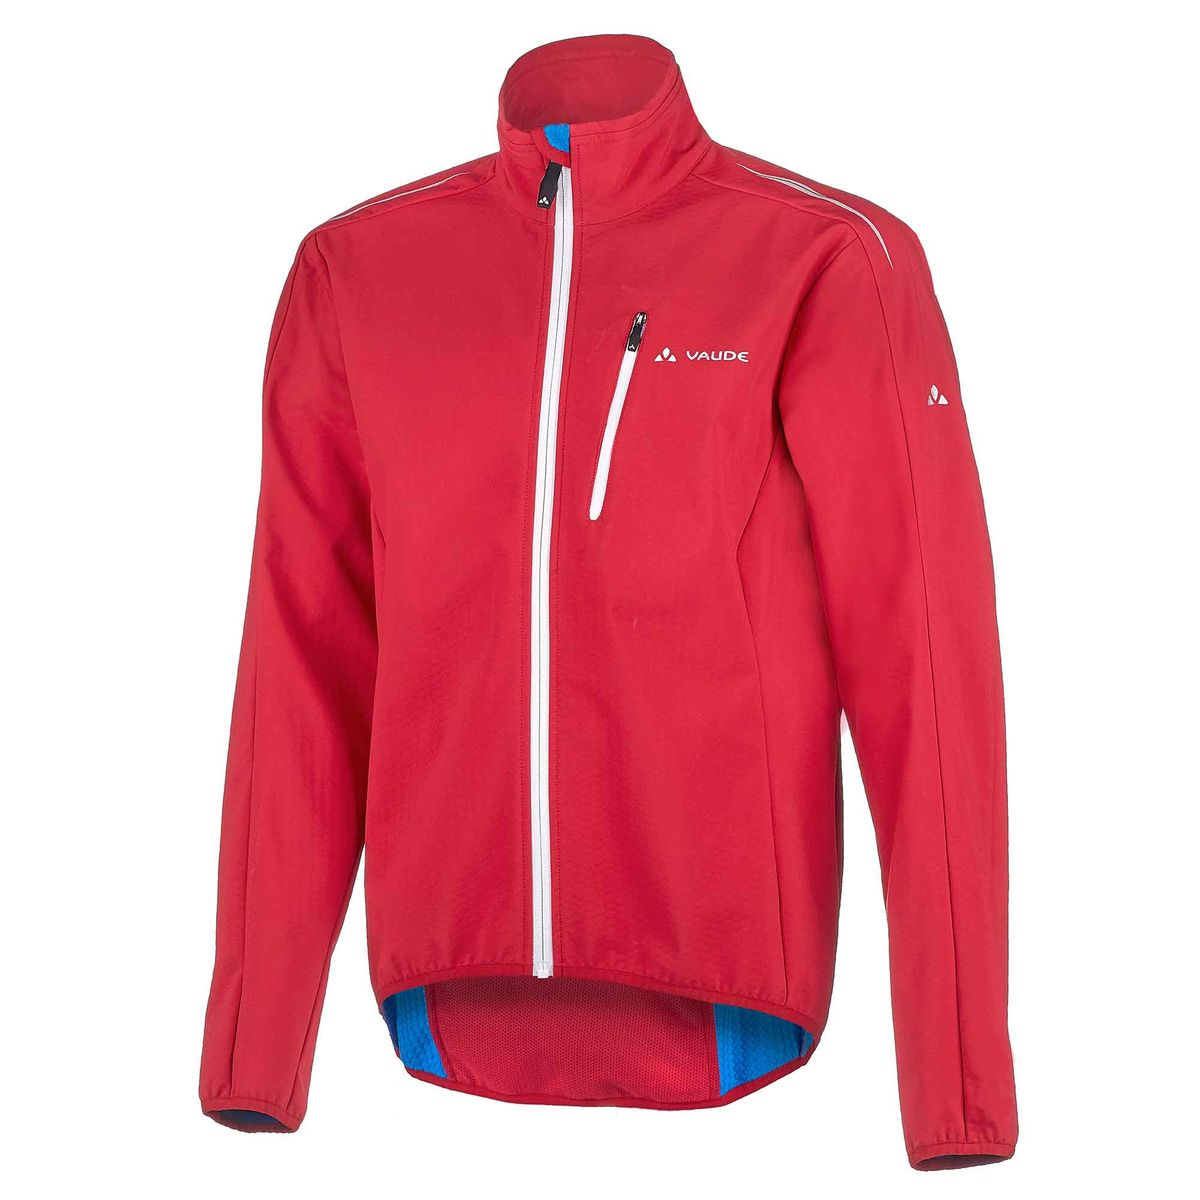 KUPOL Softshell Jacke by VAUDE